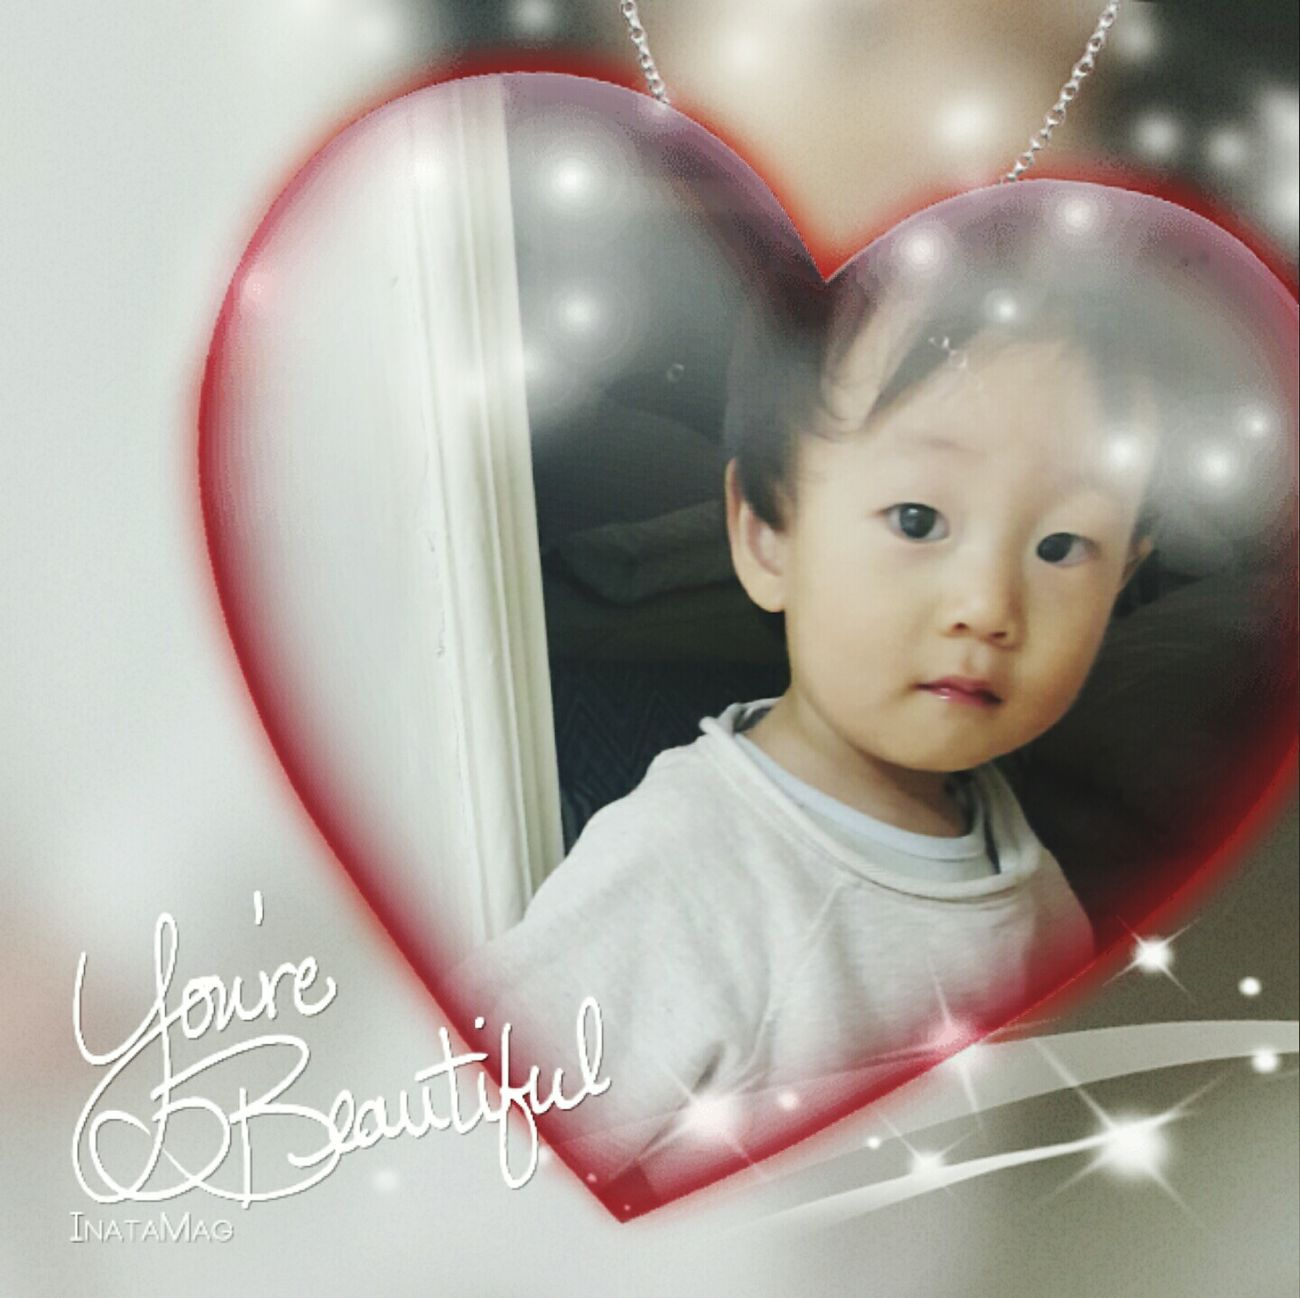 MerryChristmas Happiness Baby Love Myson 육아 Nursing Hope